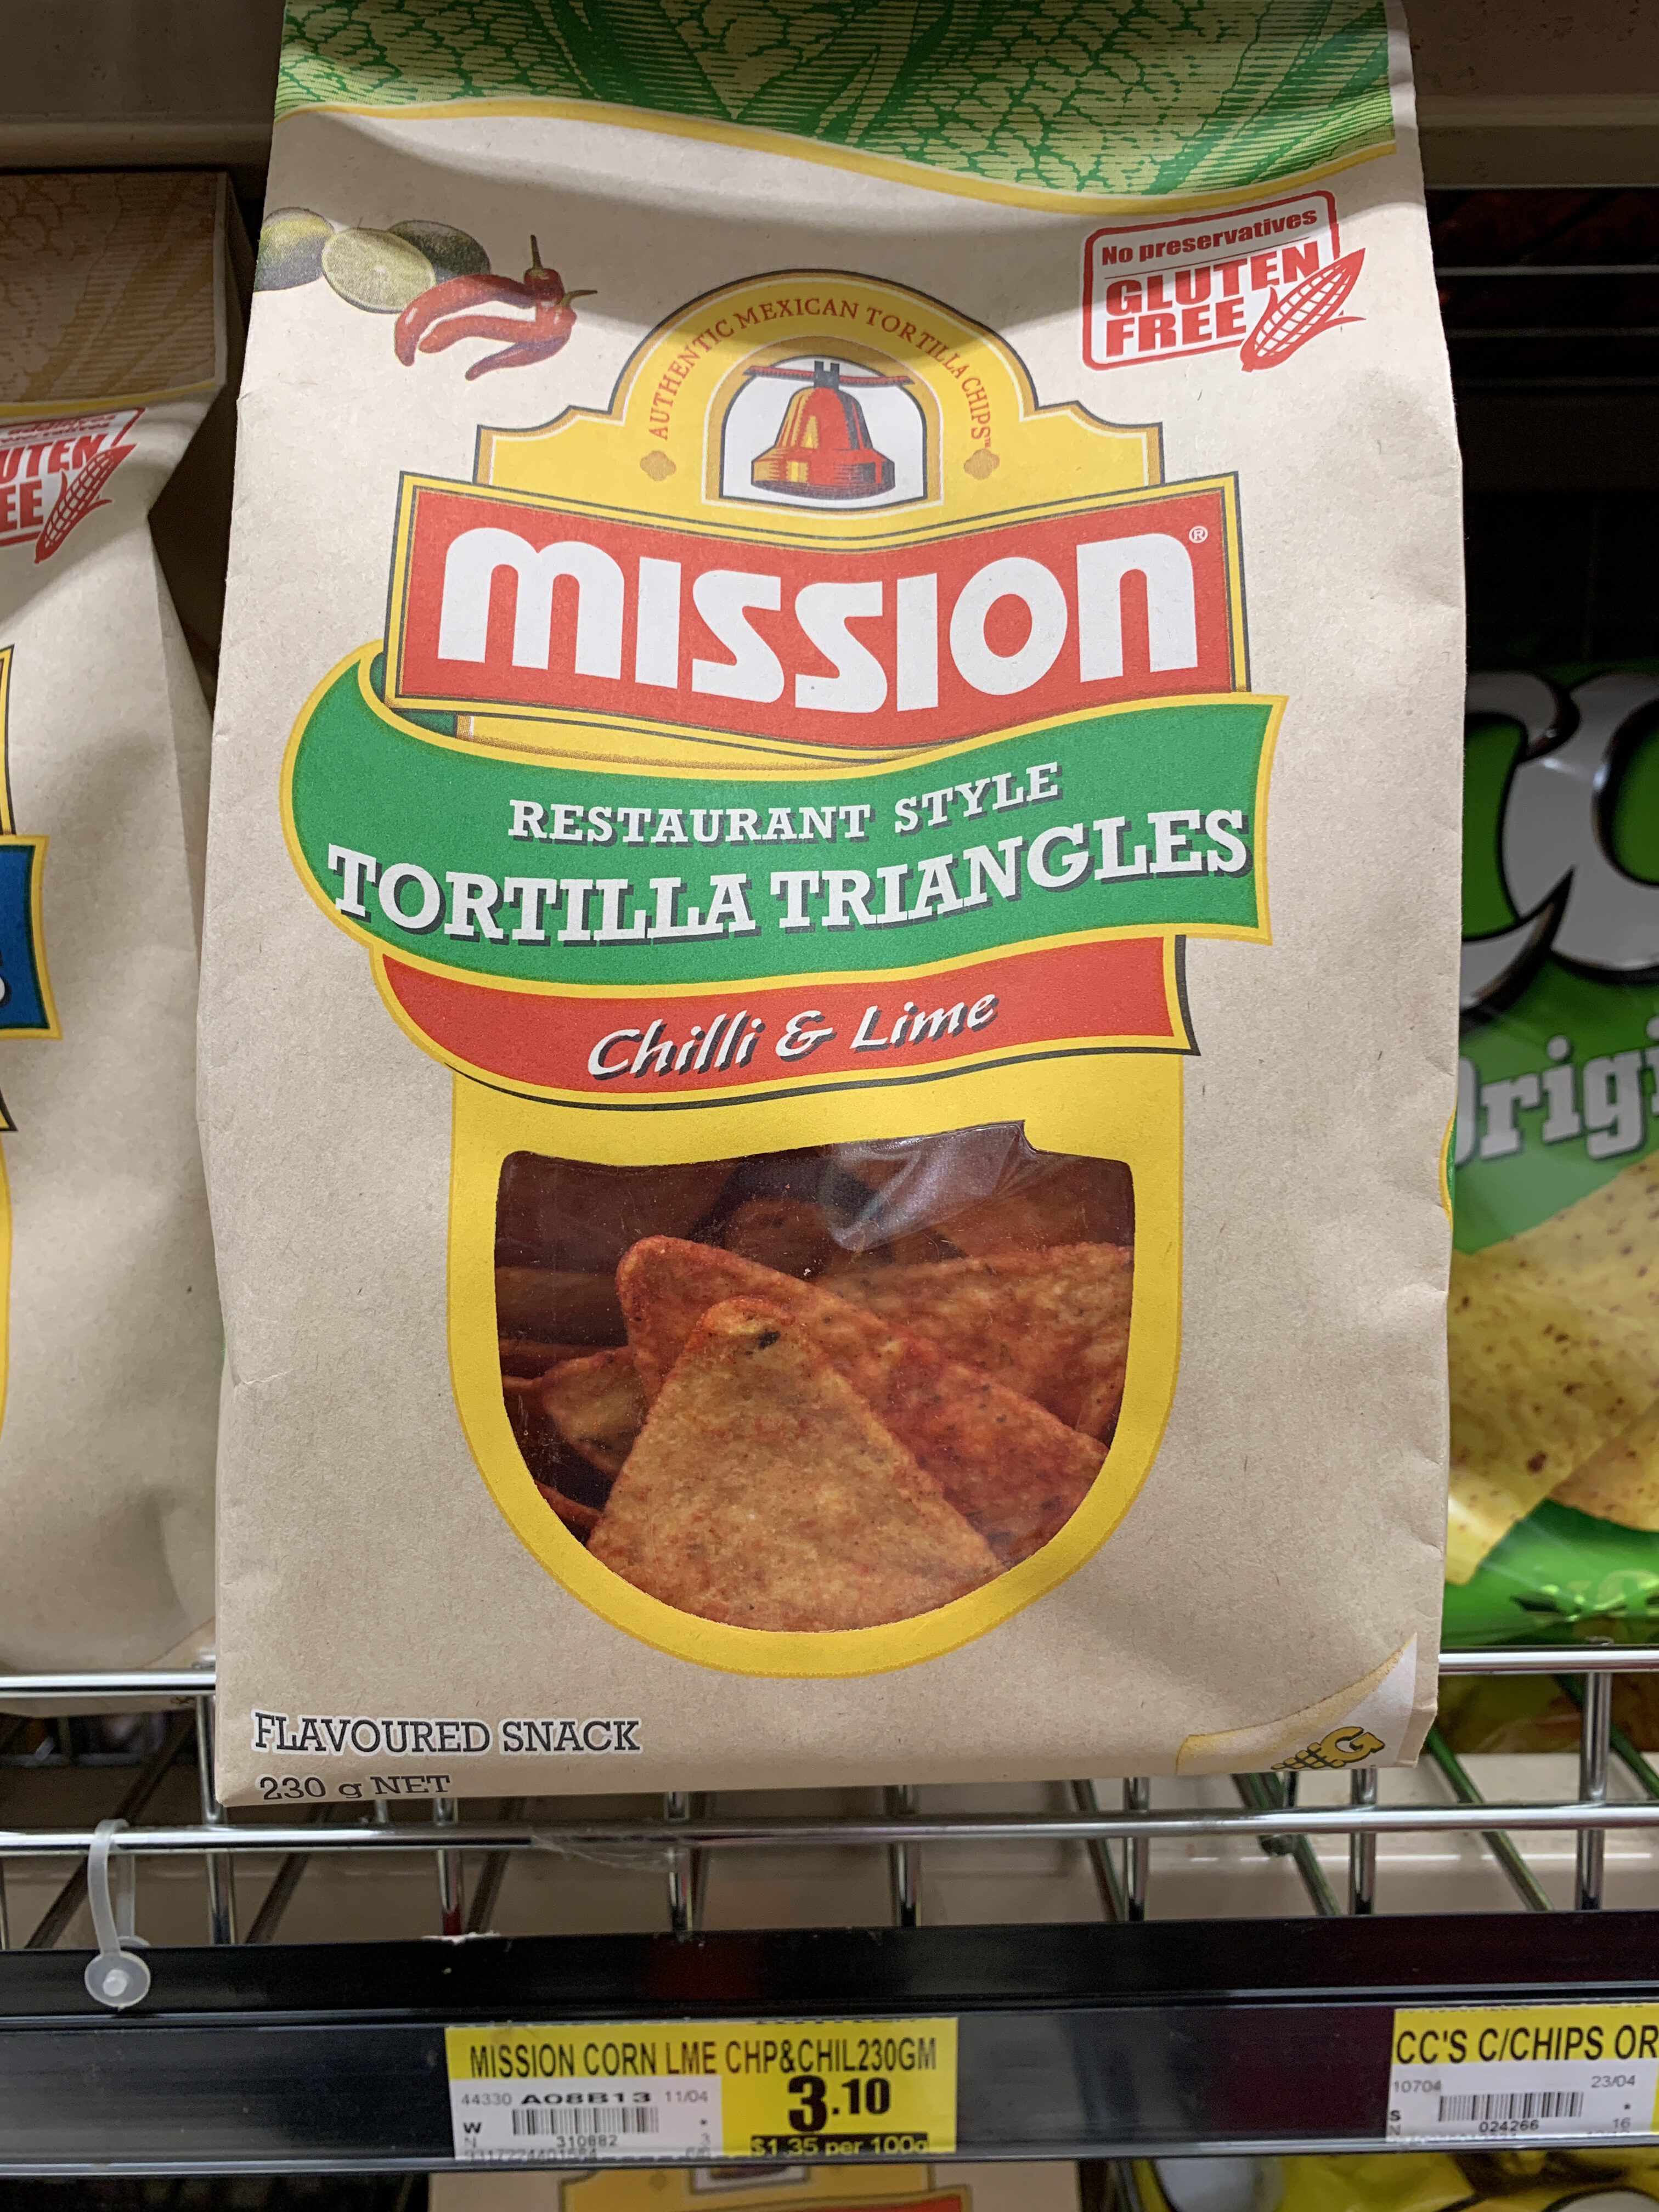 Mission tortilla triangles chili and lime - Product